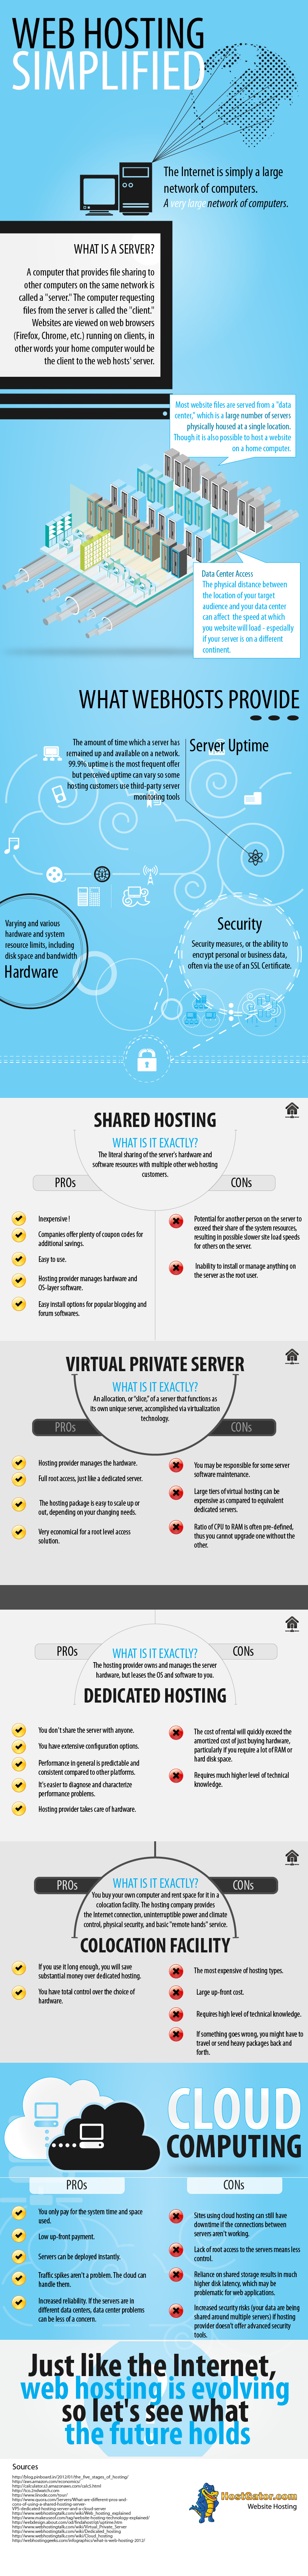 Web Hosting Simplified (Infographic)